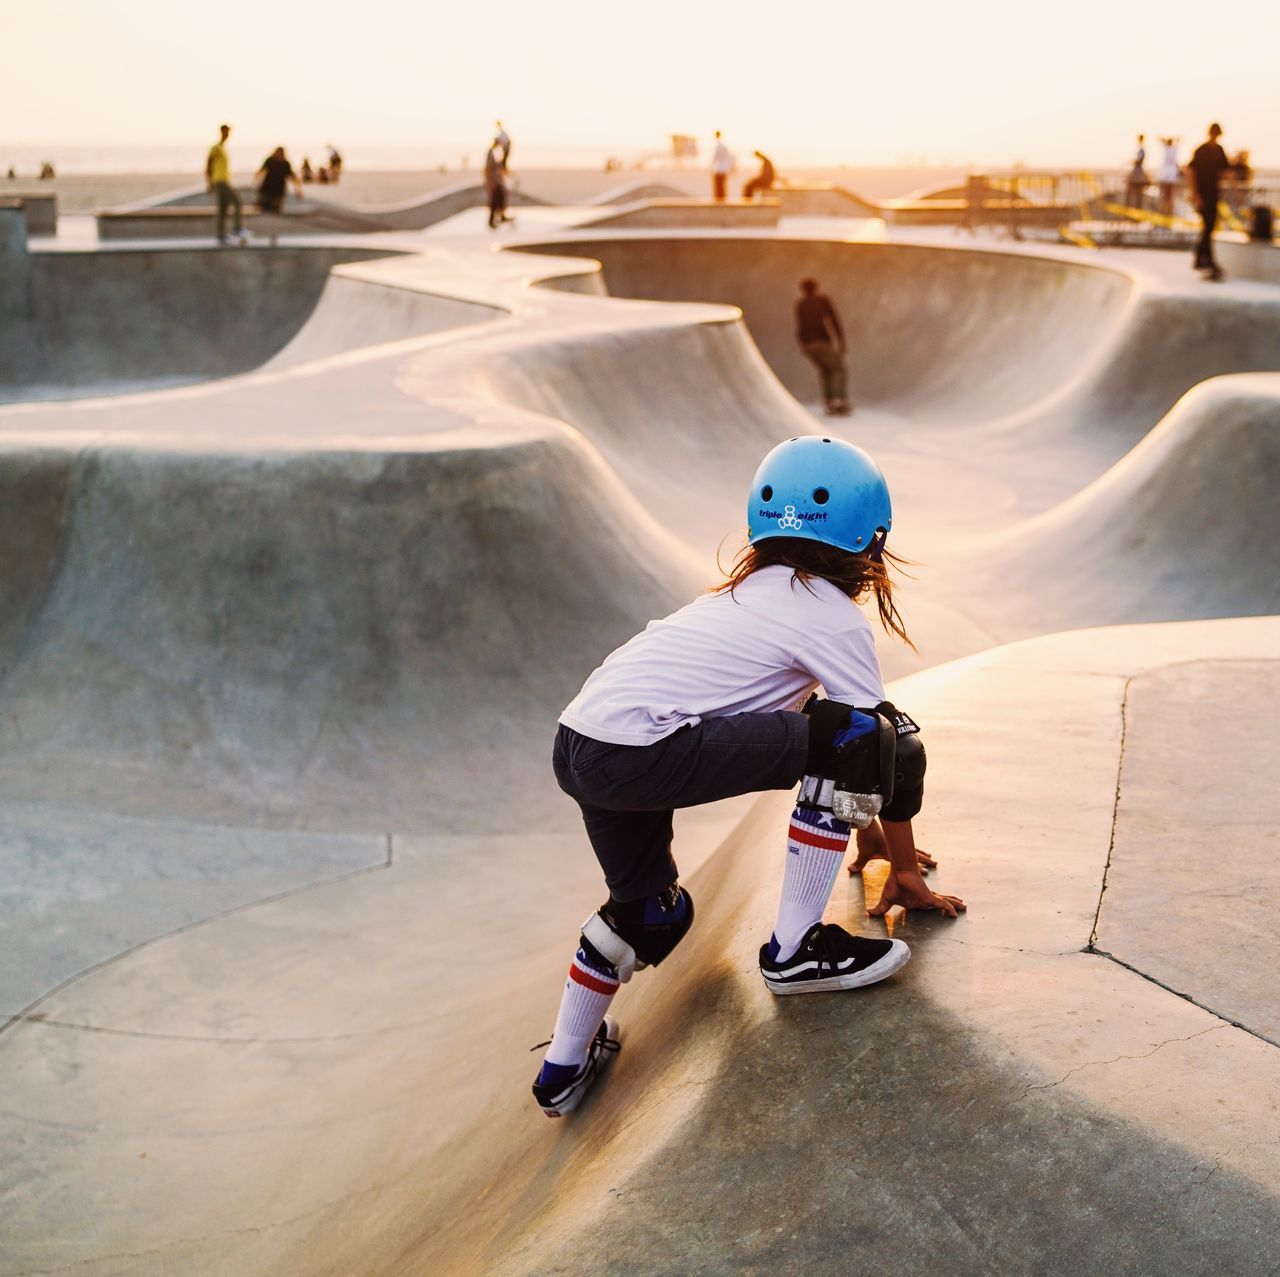 real people, leisure activity, full length, lifestyles, childhood, incidental people, one person, skateboard park, day, casual clothing, skateboard, skill, boys, weekend activities, adventure, outdoors, water, sport, extreme sports, sky, people